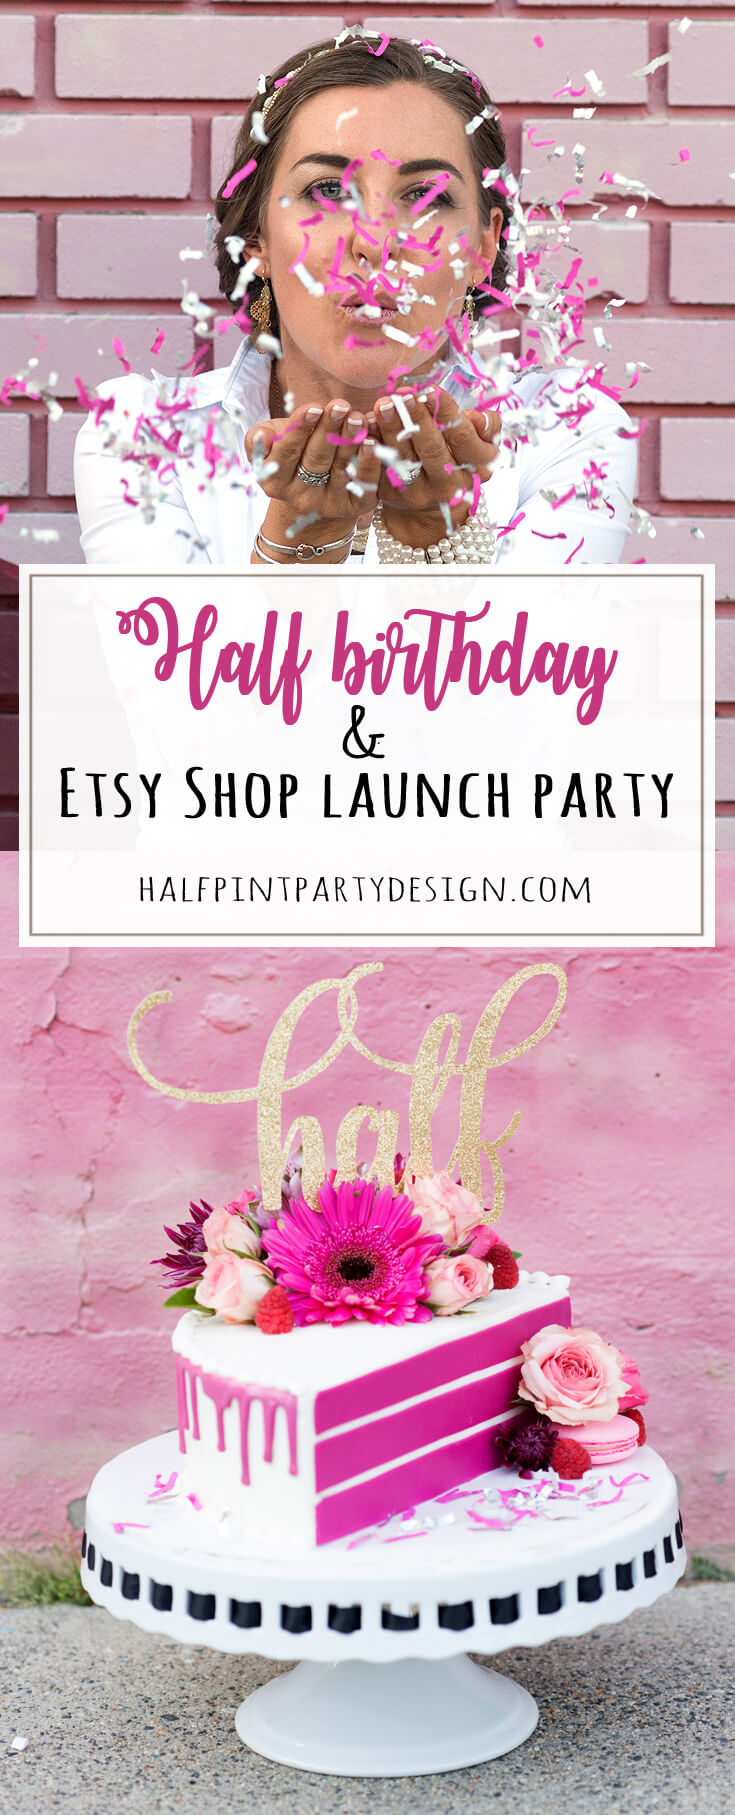 Halfpint Design celebrates a half birthday with the launching of a new Halfpint Party Design Etsy Shop